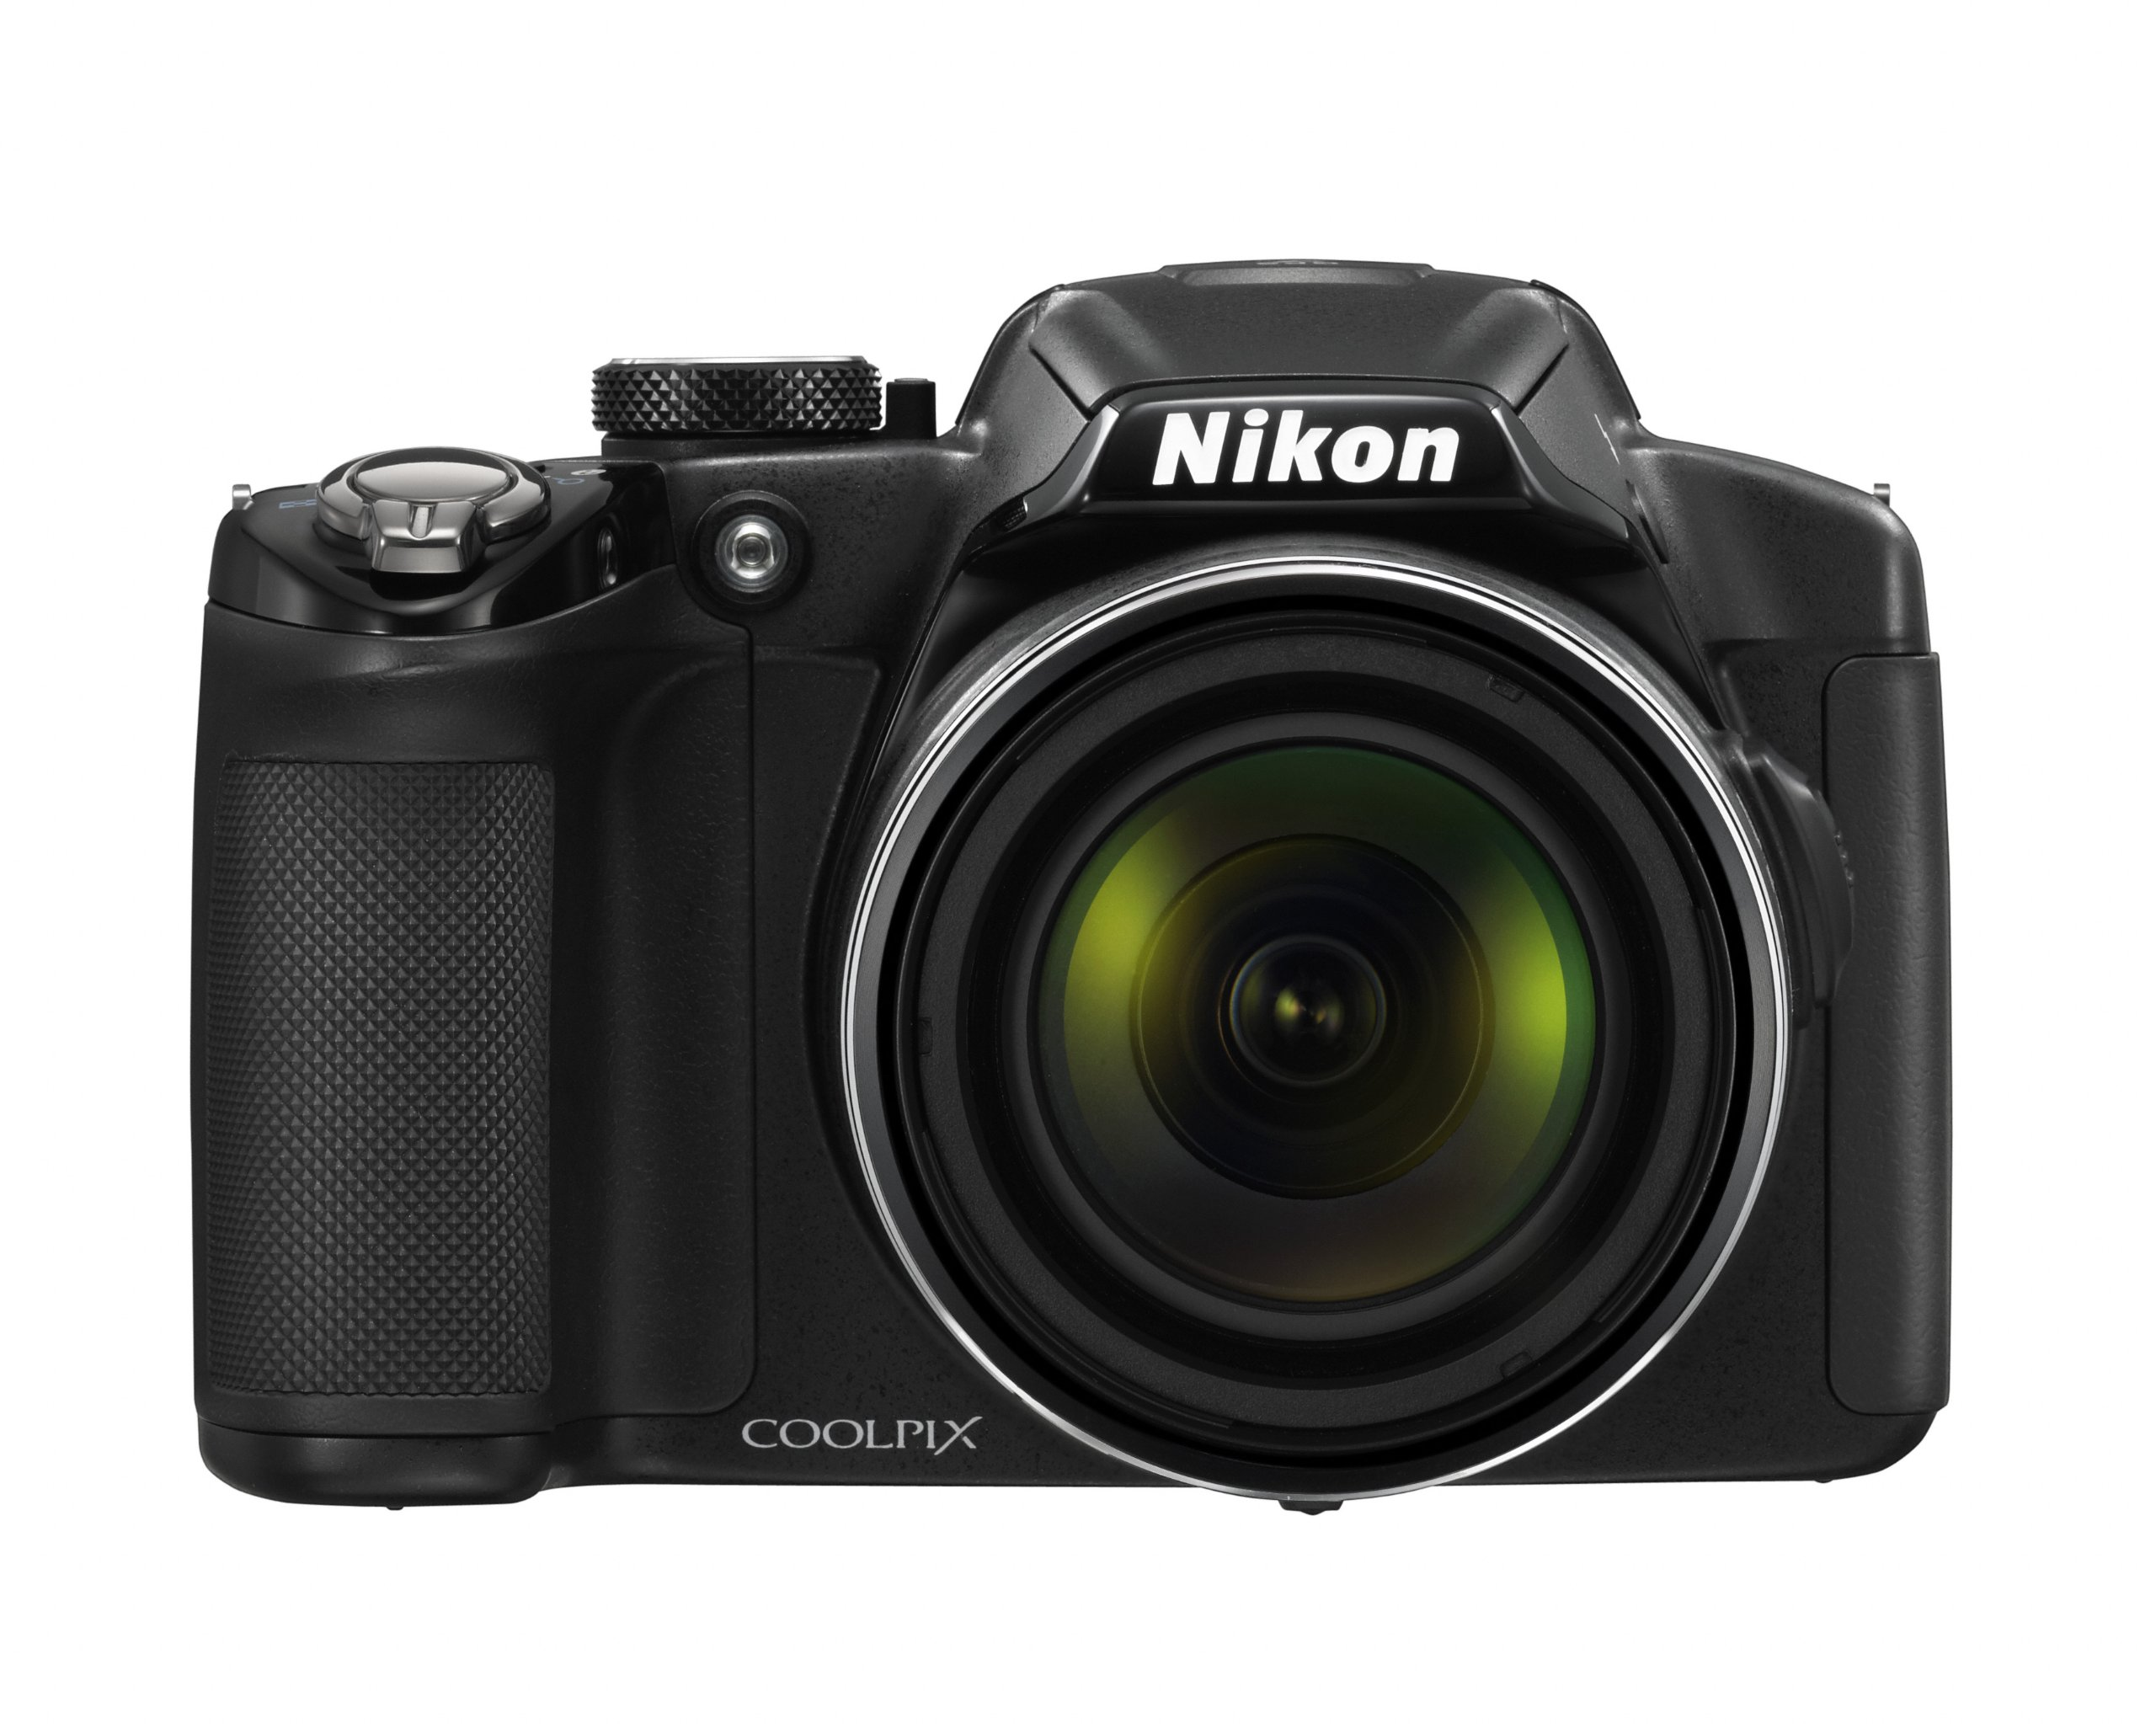 Nikon COOLPIX P510 16.1 MP CMOS Digital Camera with 42x Zoom NIKKOR ED Glass Lens and GPS Record Location (Black) (OLD MODEL)